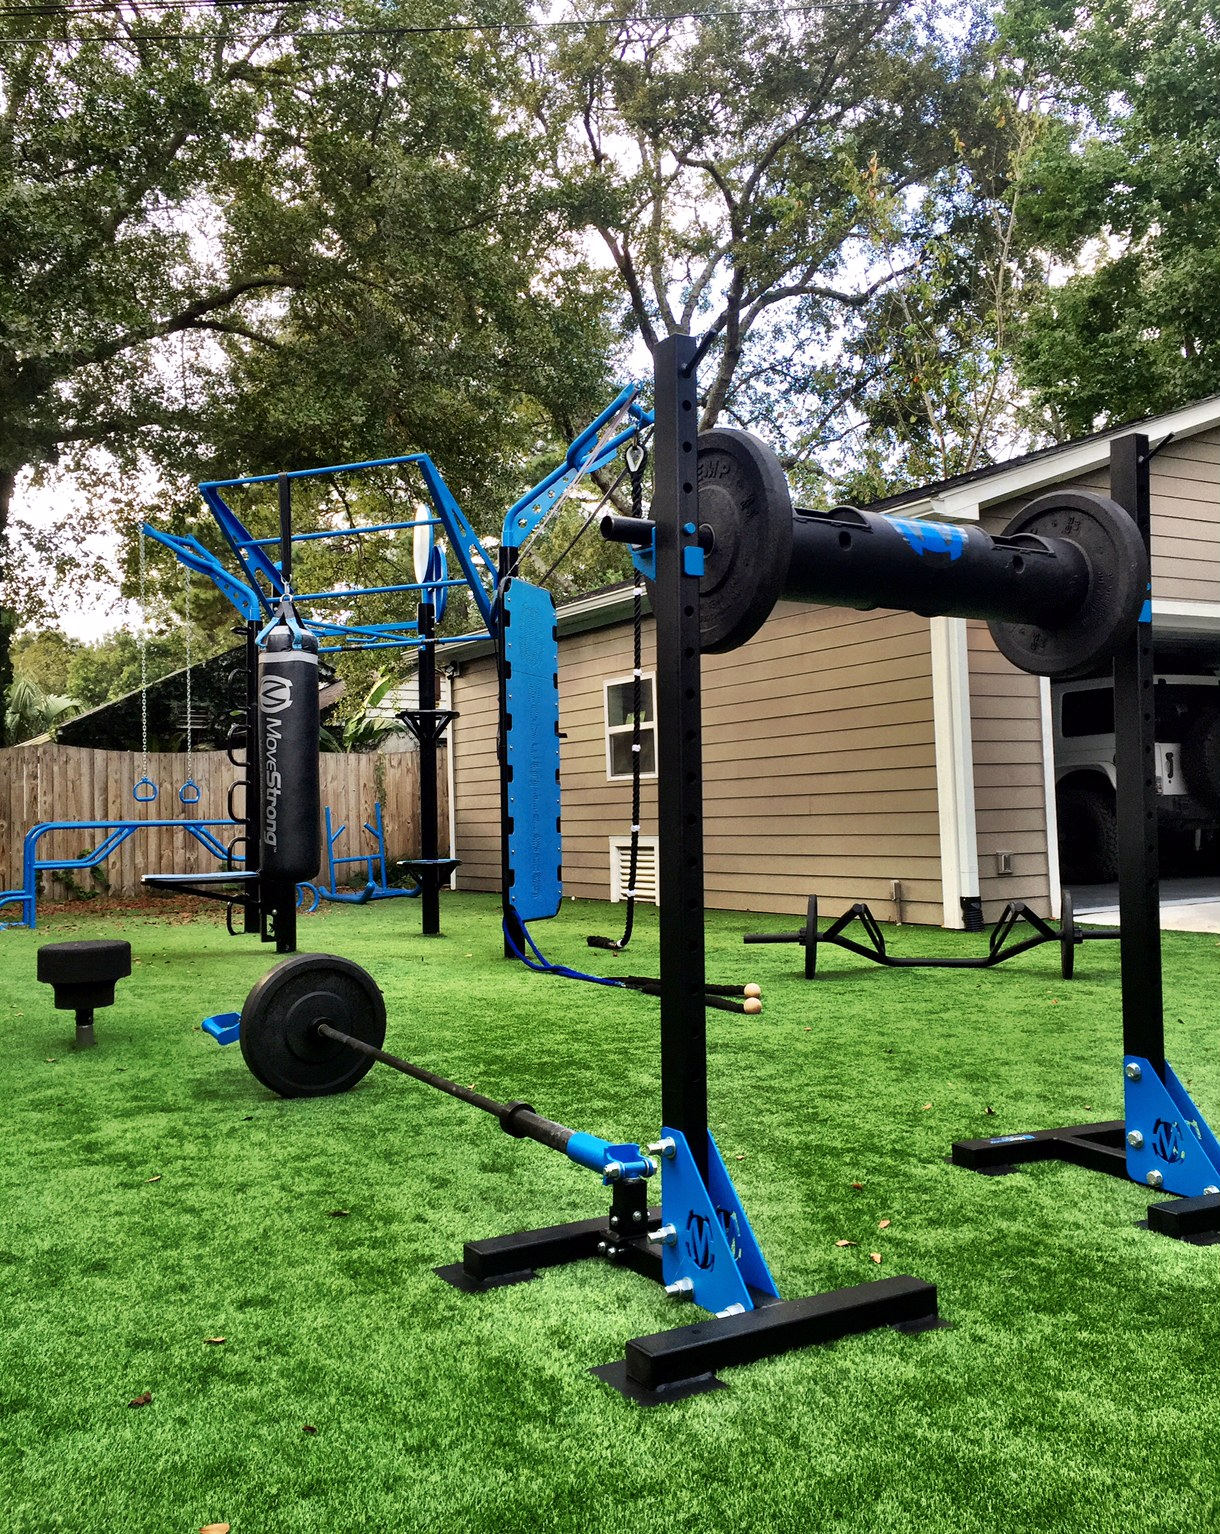 Products include MoveStrong Indy Squat Stands with GRT, Elite Parallel Bars, Balance Steps, Zig Zag balance beam (not shown), Drive Sled, DSL Bar, Strength Log. The MoveStrong T-Rex Outdoor Functional Training Station is a 4-post zig-zag design with Kickplate, Climber bar, Climbing Rope, Outdoor Rings, pull-up bars, Medicine ball target, Loop anchor post, and special design MoveStrong Heavy Bag.